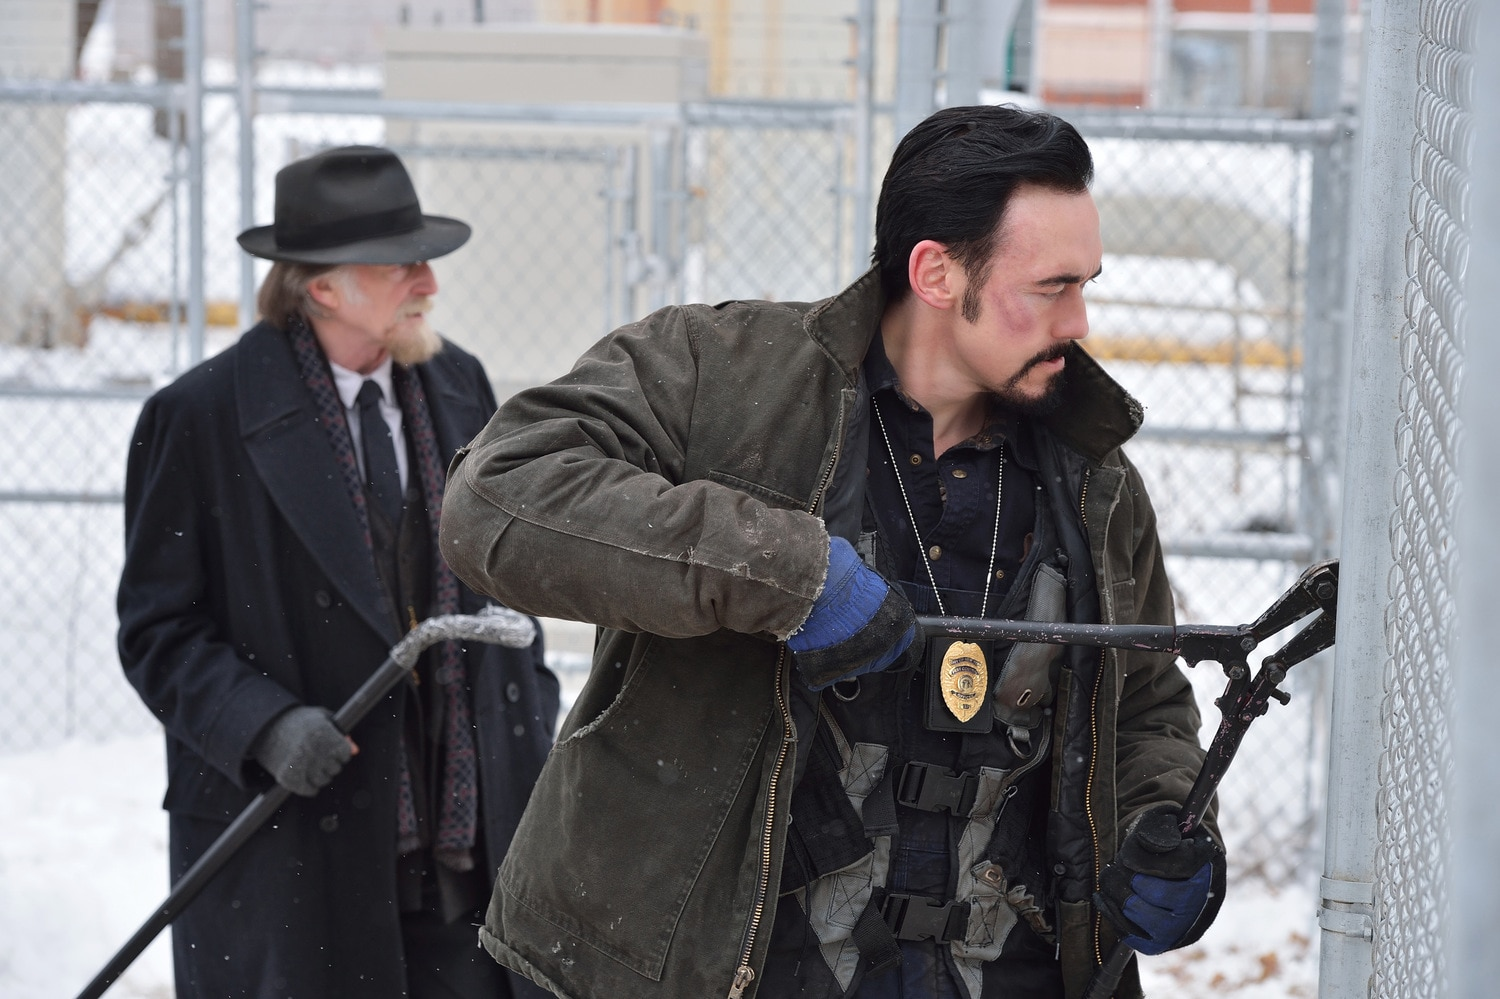 STRAIN 207 01945d hires1 - Meet The Born in these Images and Preview of The Strain Episode 2.07